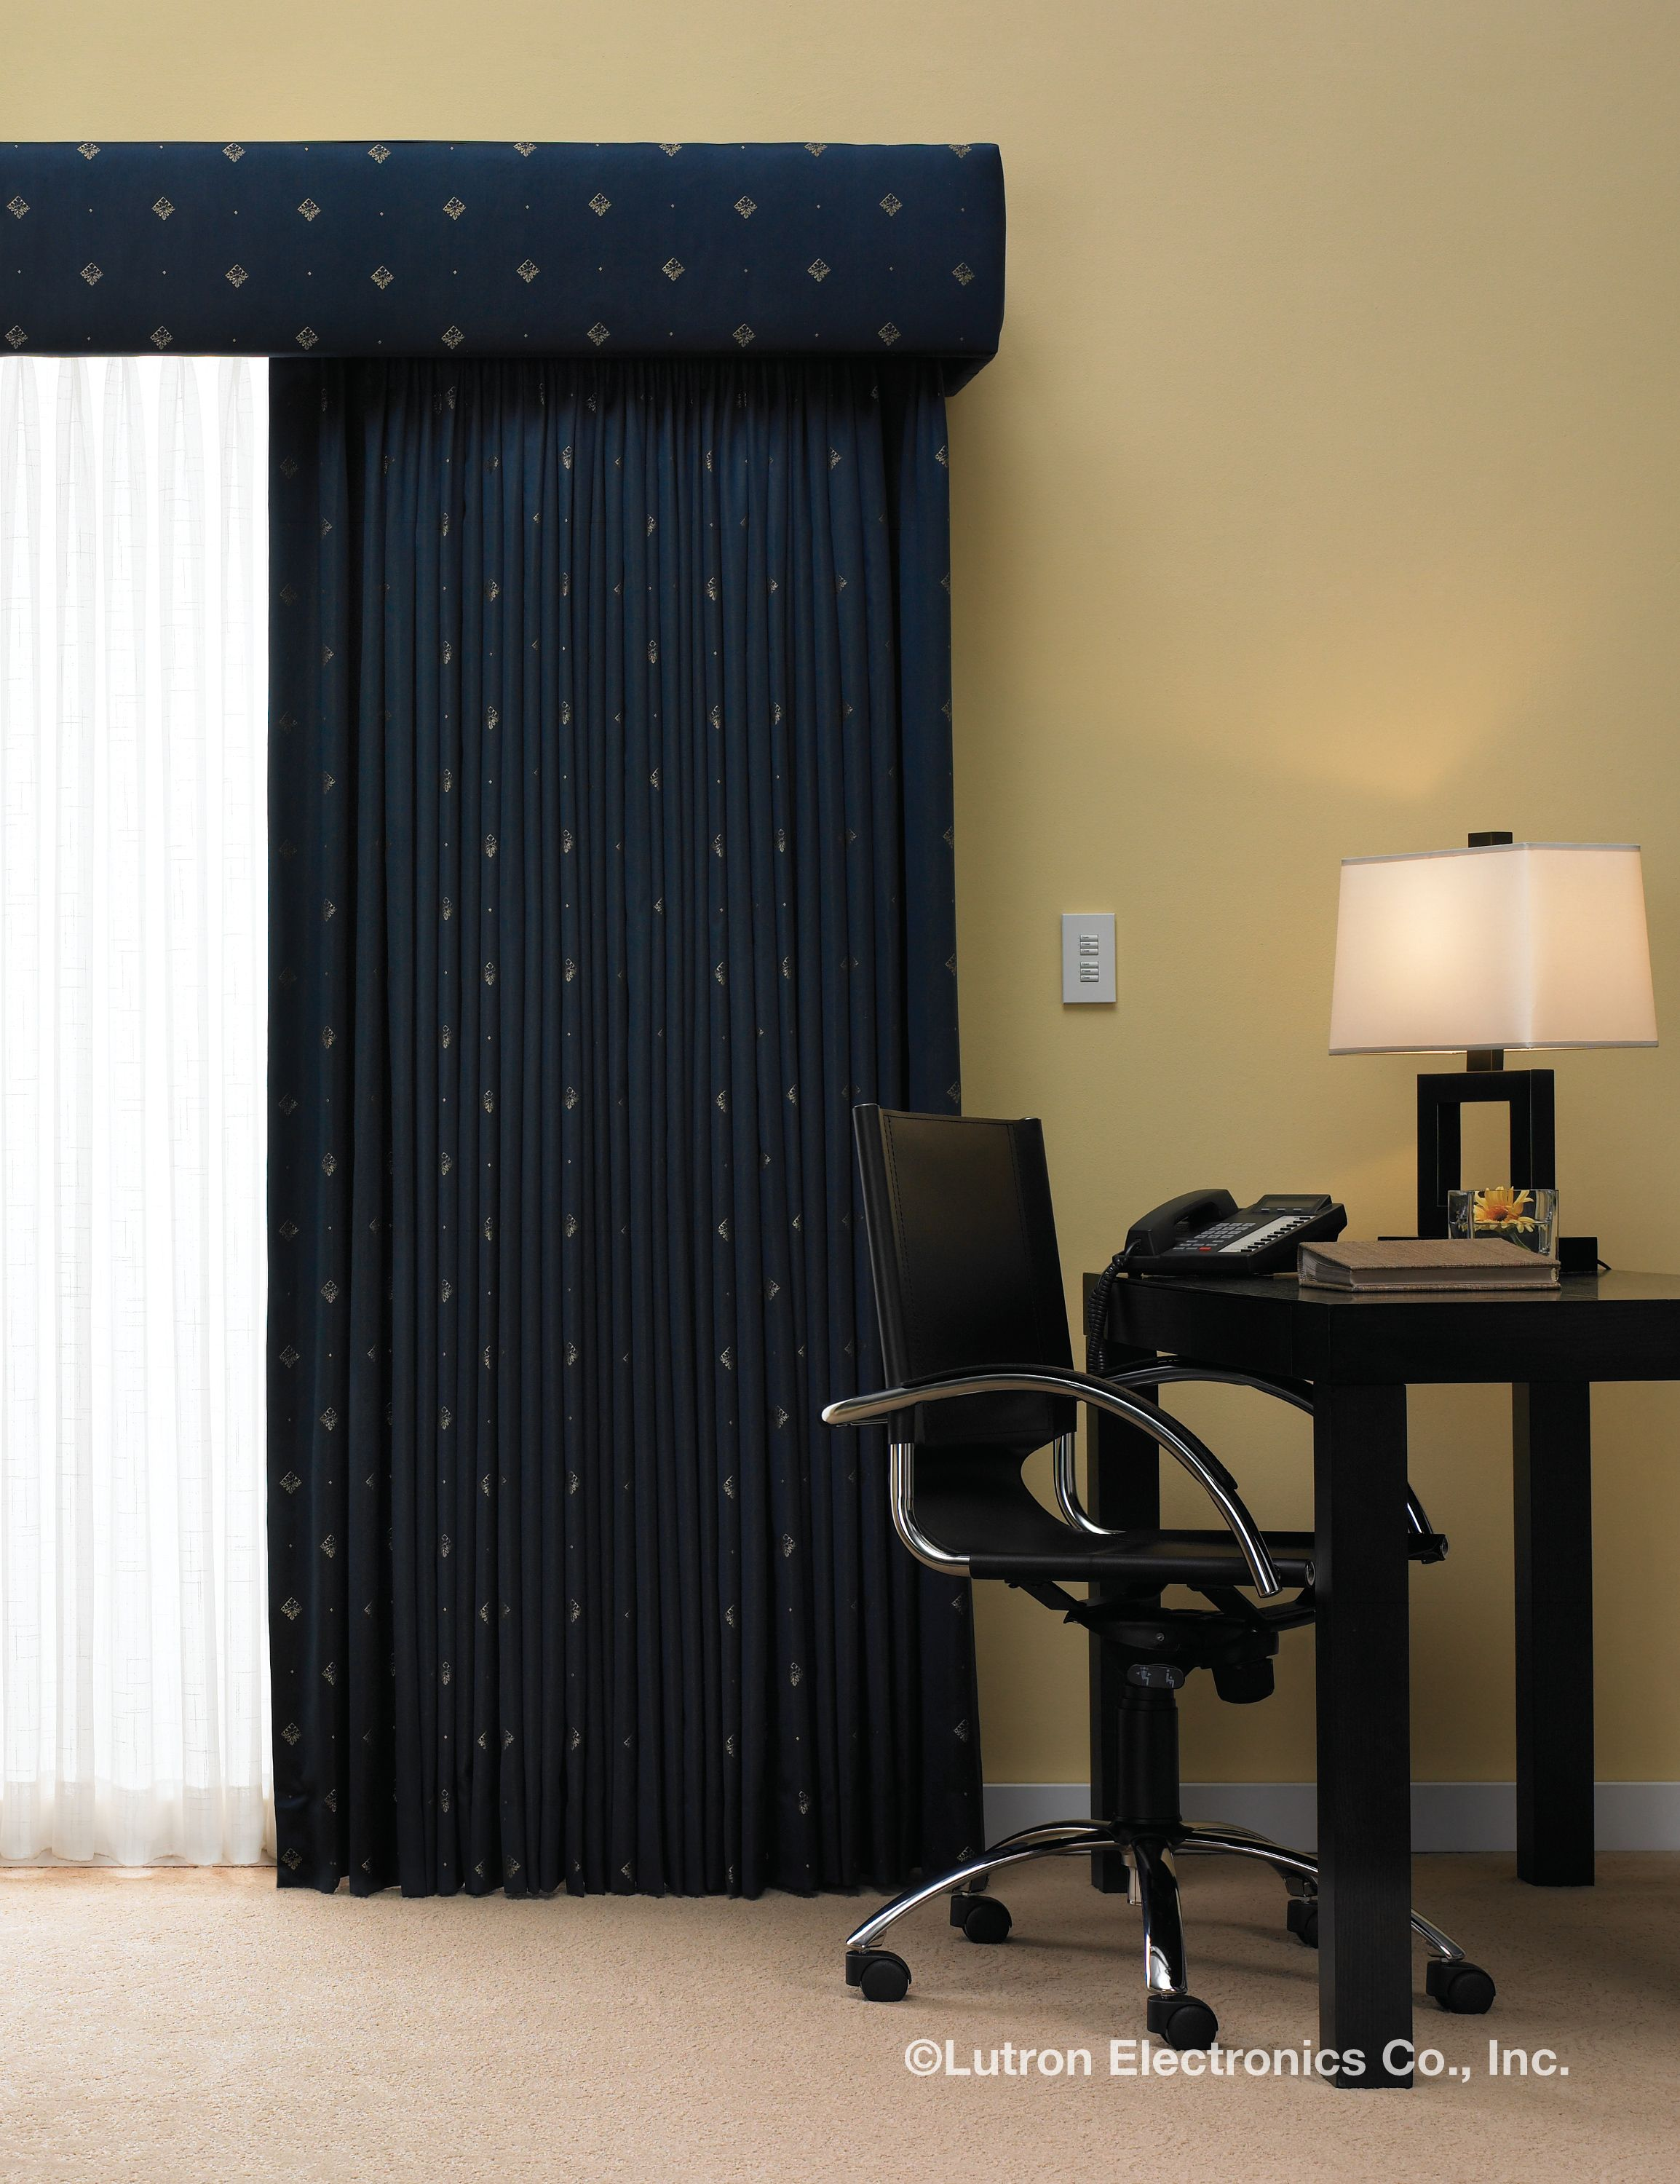 rods drapery of residential full home drapes smart control installation shades castlecom size for vertical auditorium motorized curtains automated remote conklin curtain theater u blinds